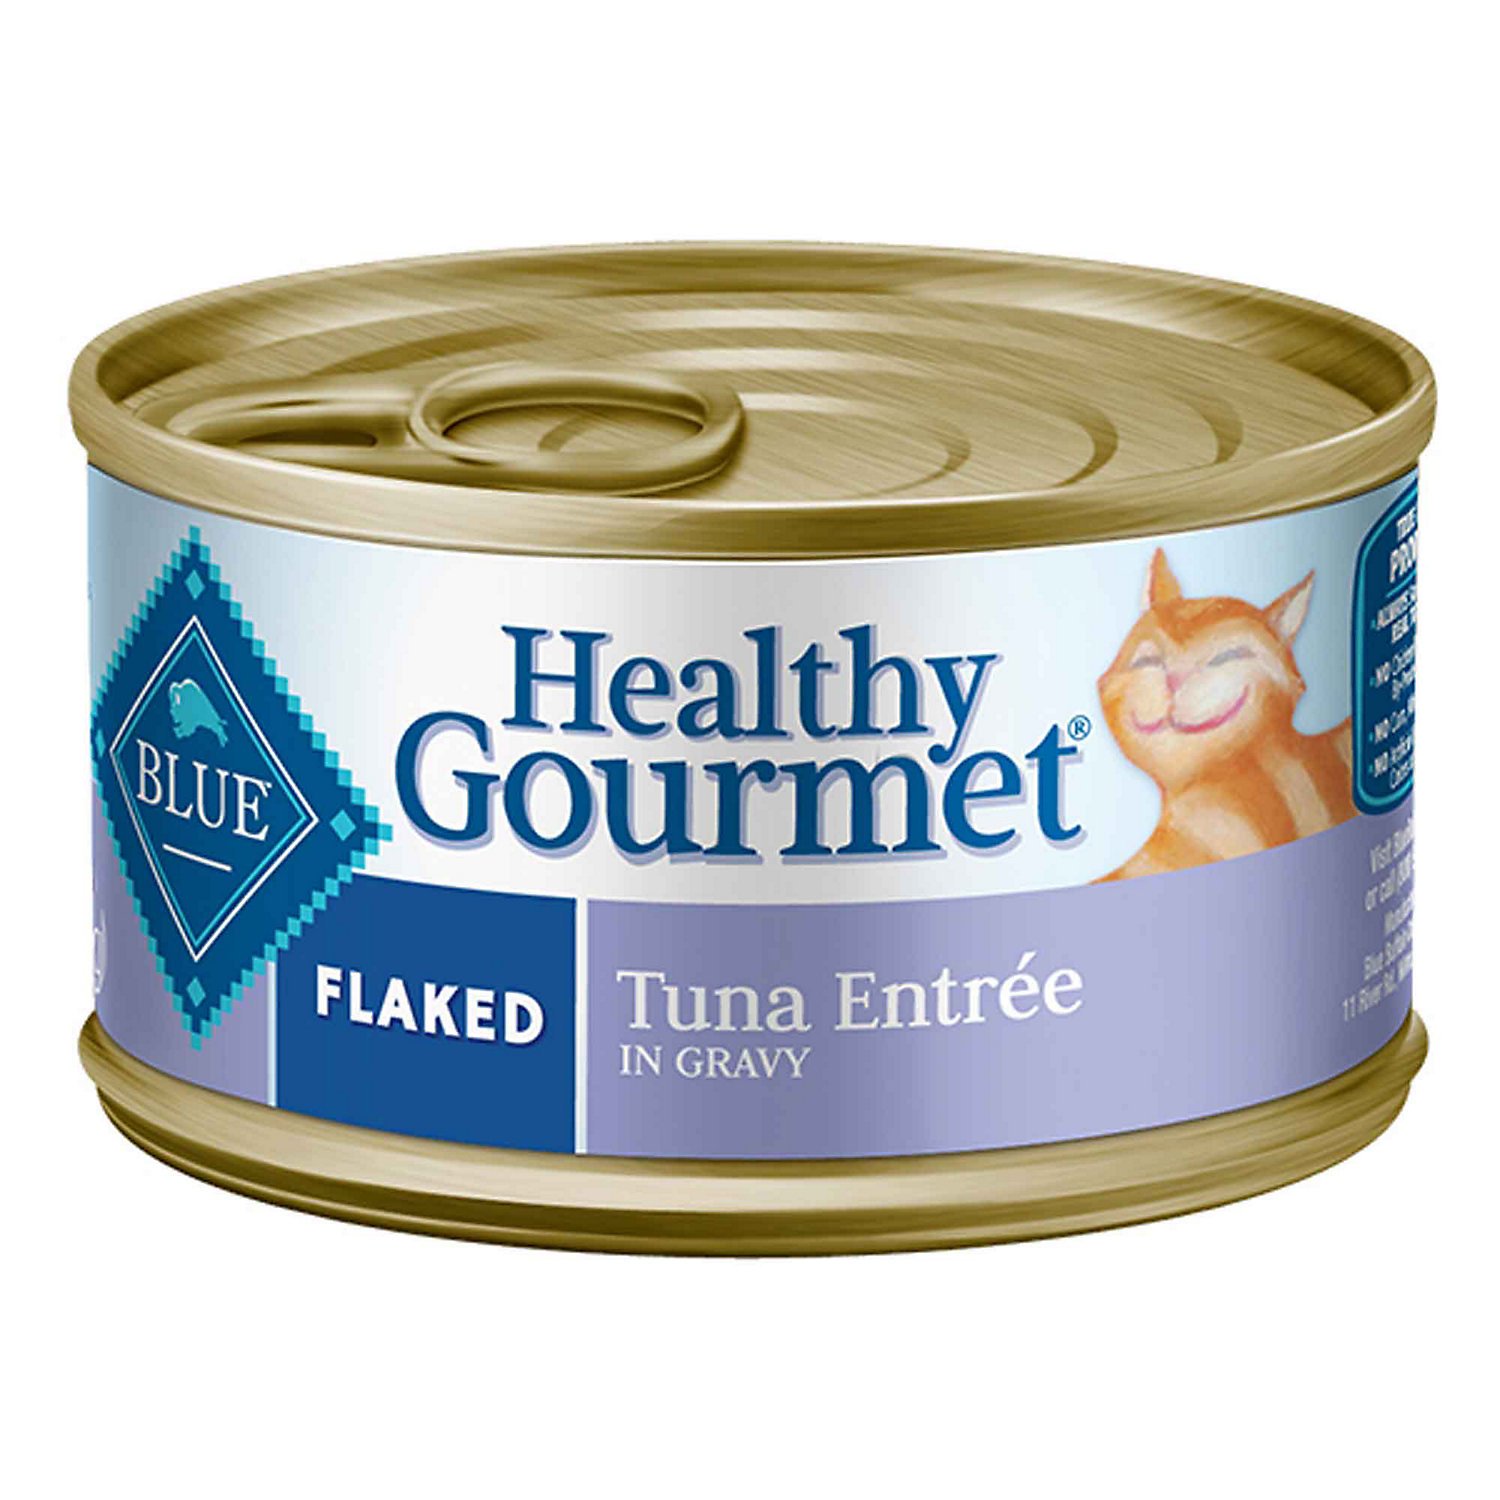 Blue Buffalo Healthy Gourmet Flaked Tuna Adult Canned Cat Food 5.5 Oz. Case Of 24